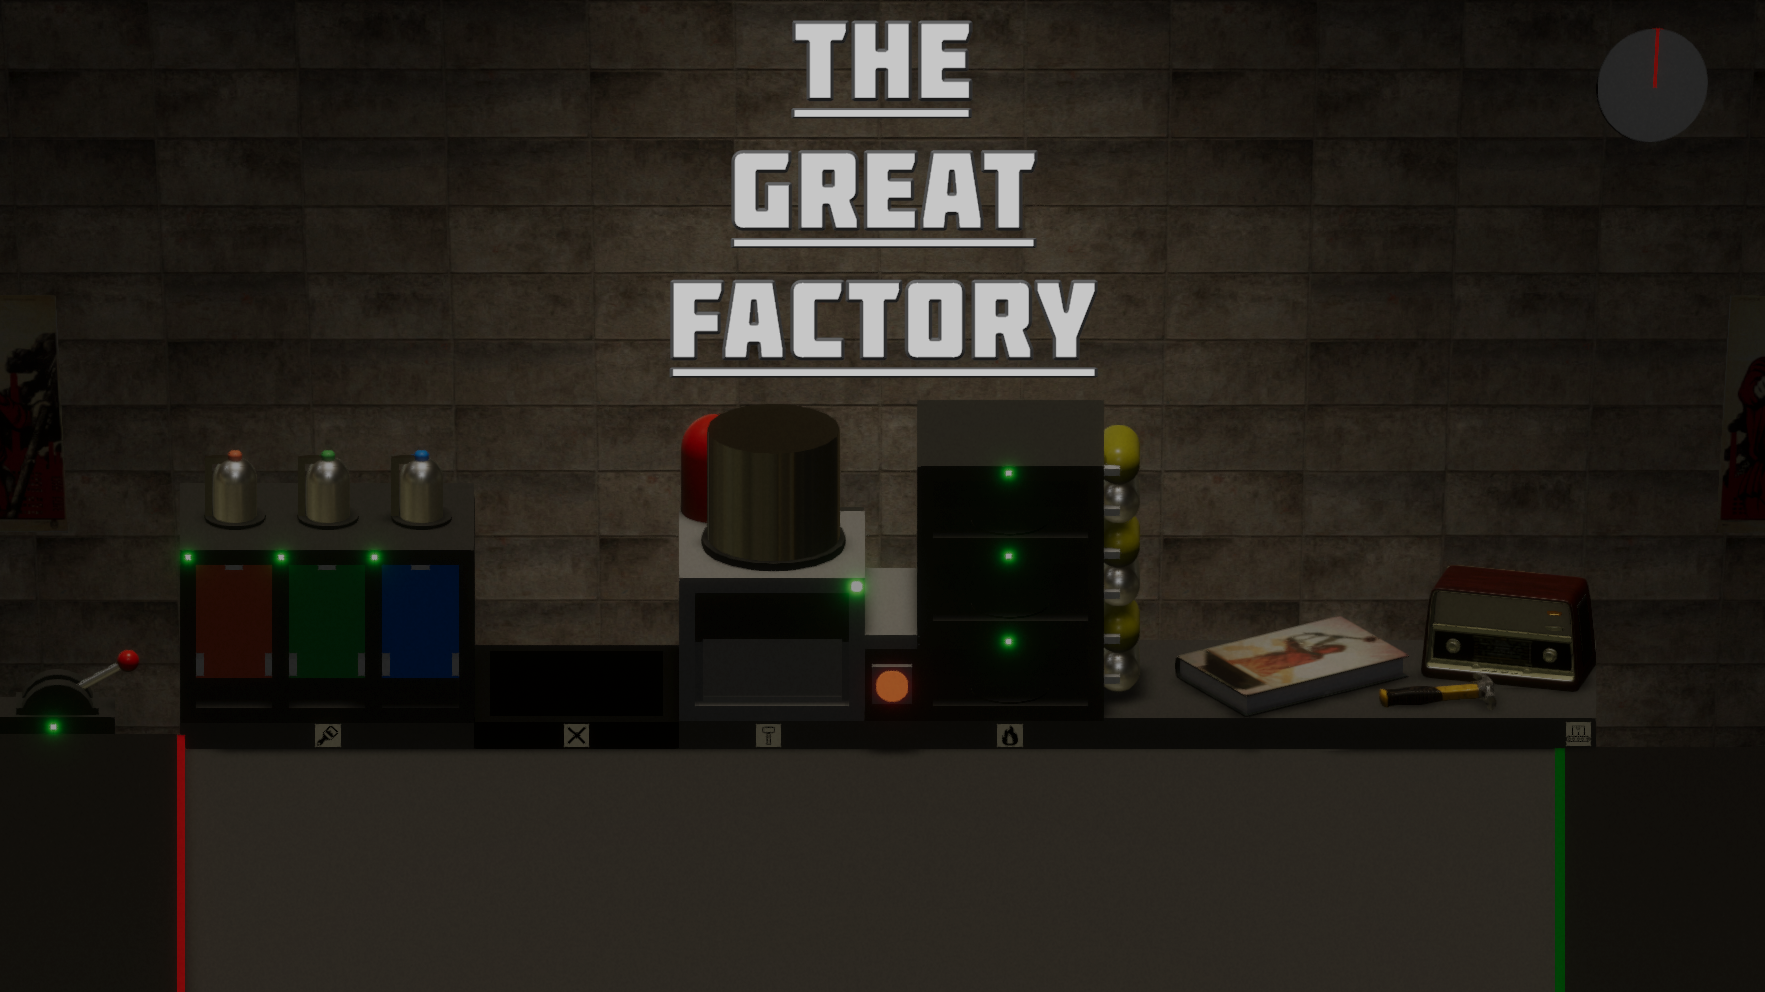 The Great Factory